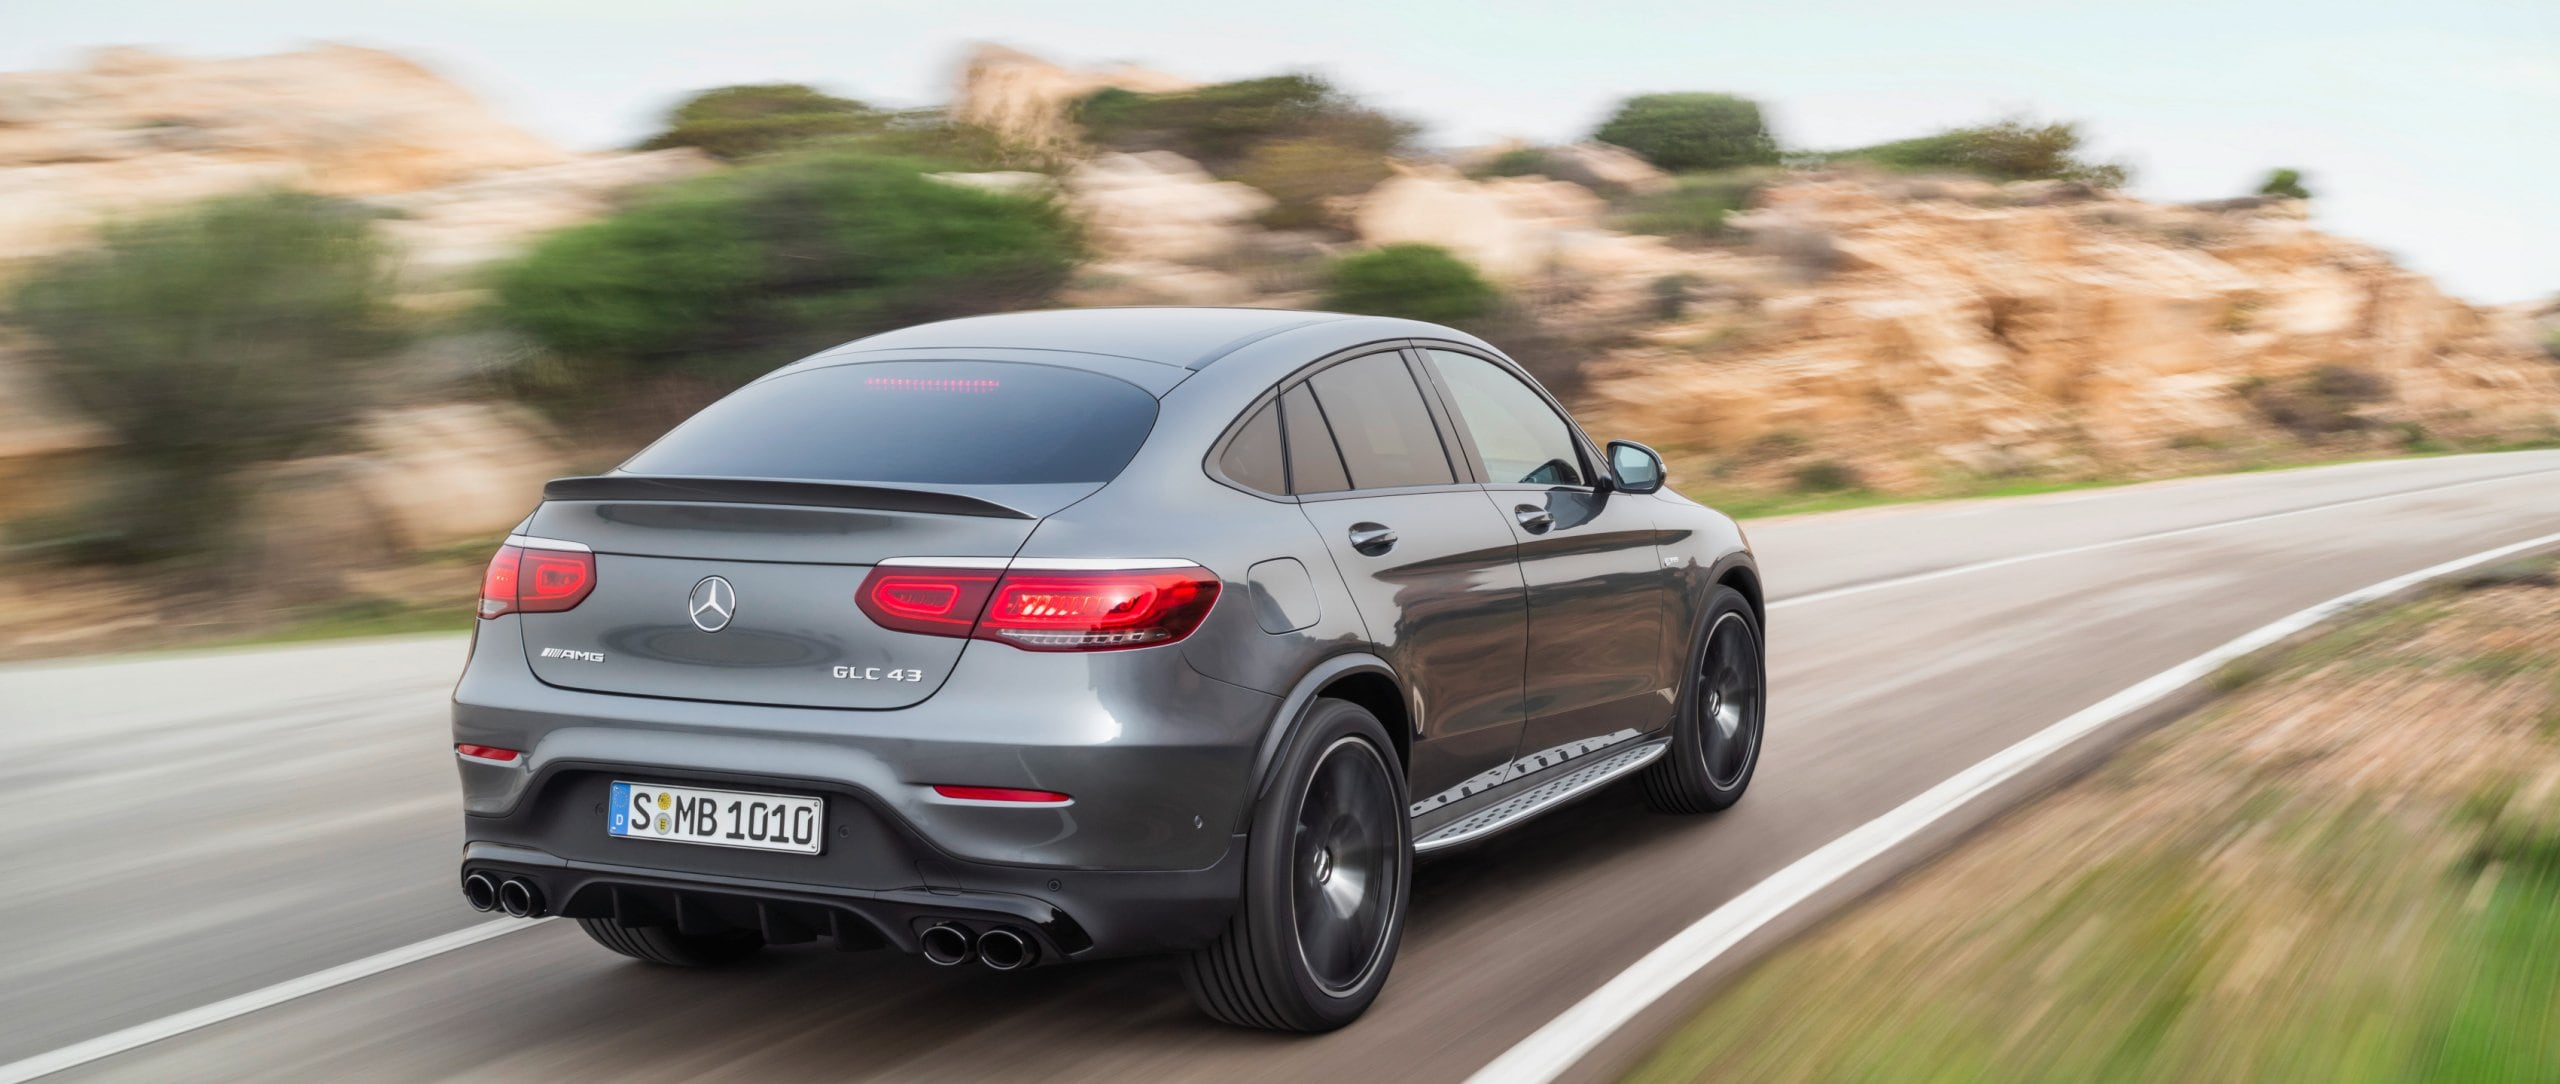 Rear view of the 2019 Mercedes-AMG GLC 43 4MATIC Coupé (C 253) in selenite grey.